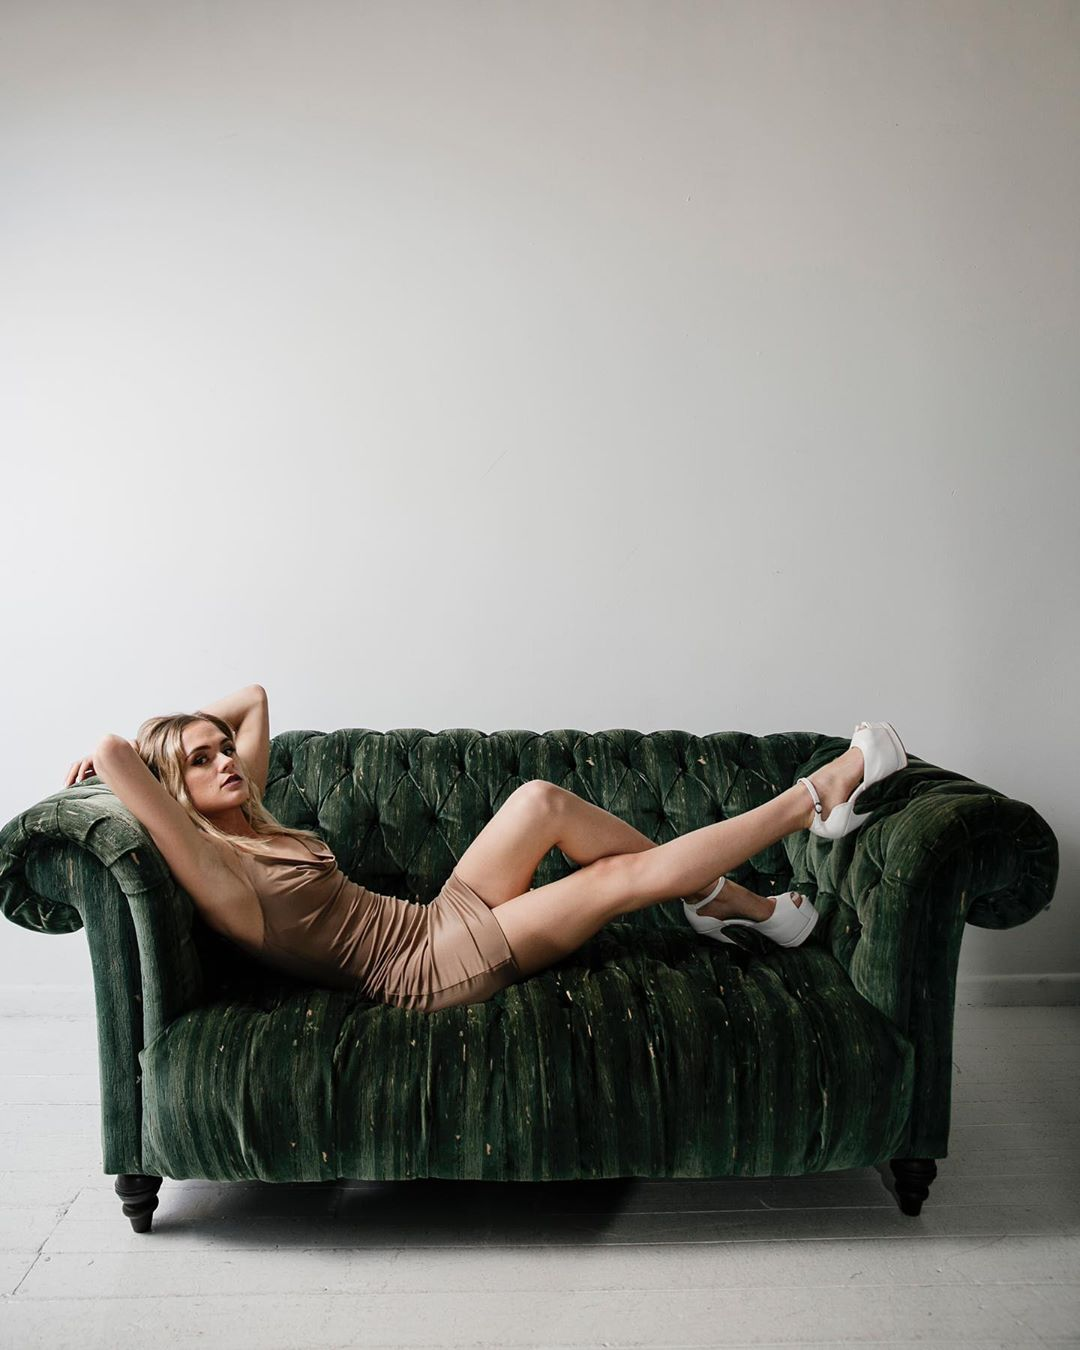 Beautiful blonde Australian model Bree Delamont wearing a tight dress and white high heels lying on a green sofa with her arms up behind her head showing her long bare legs